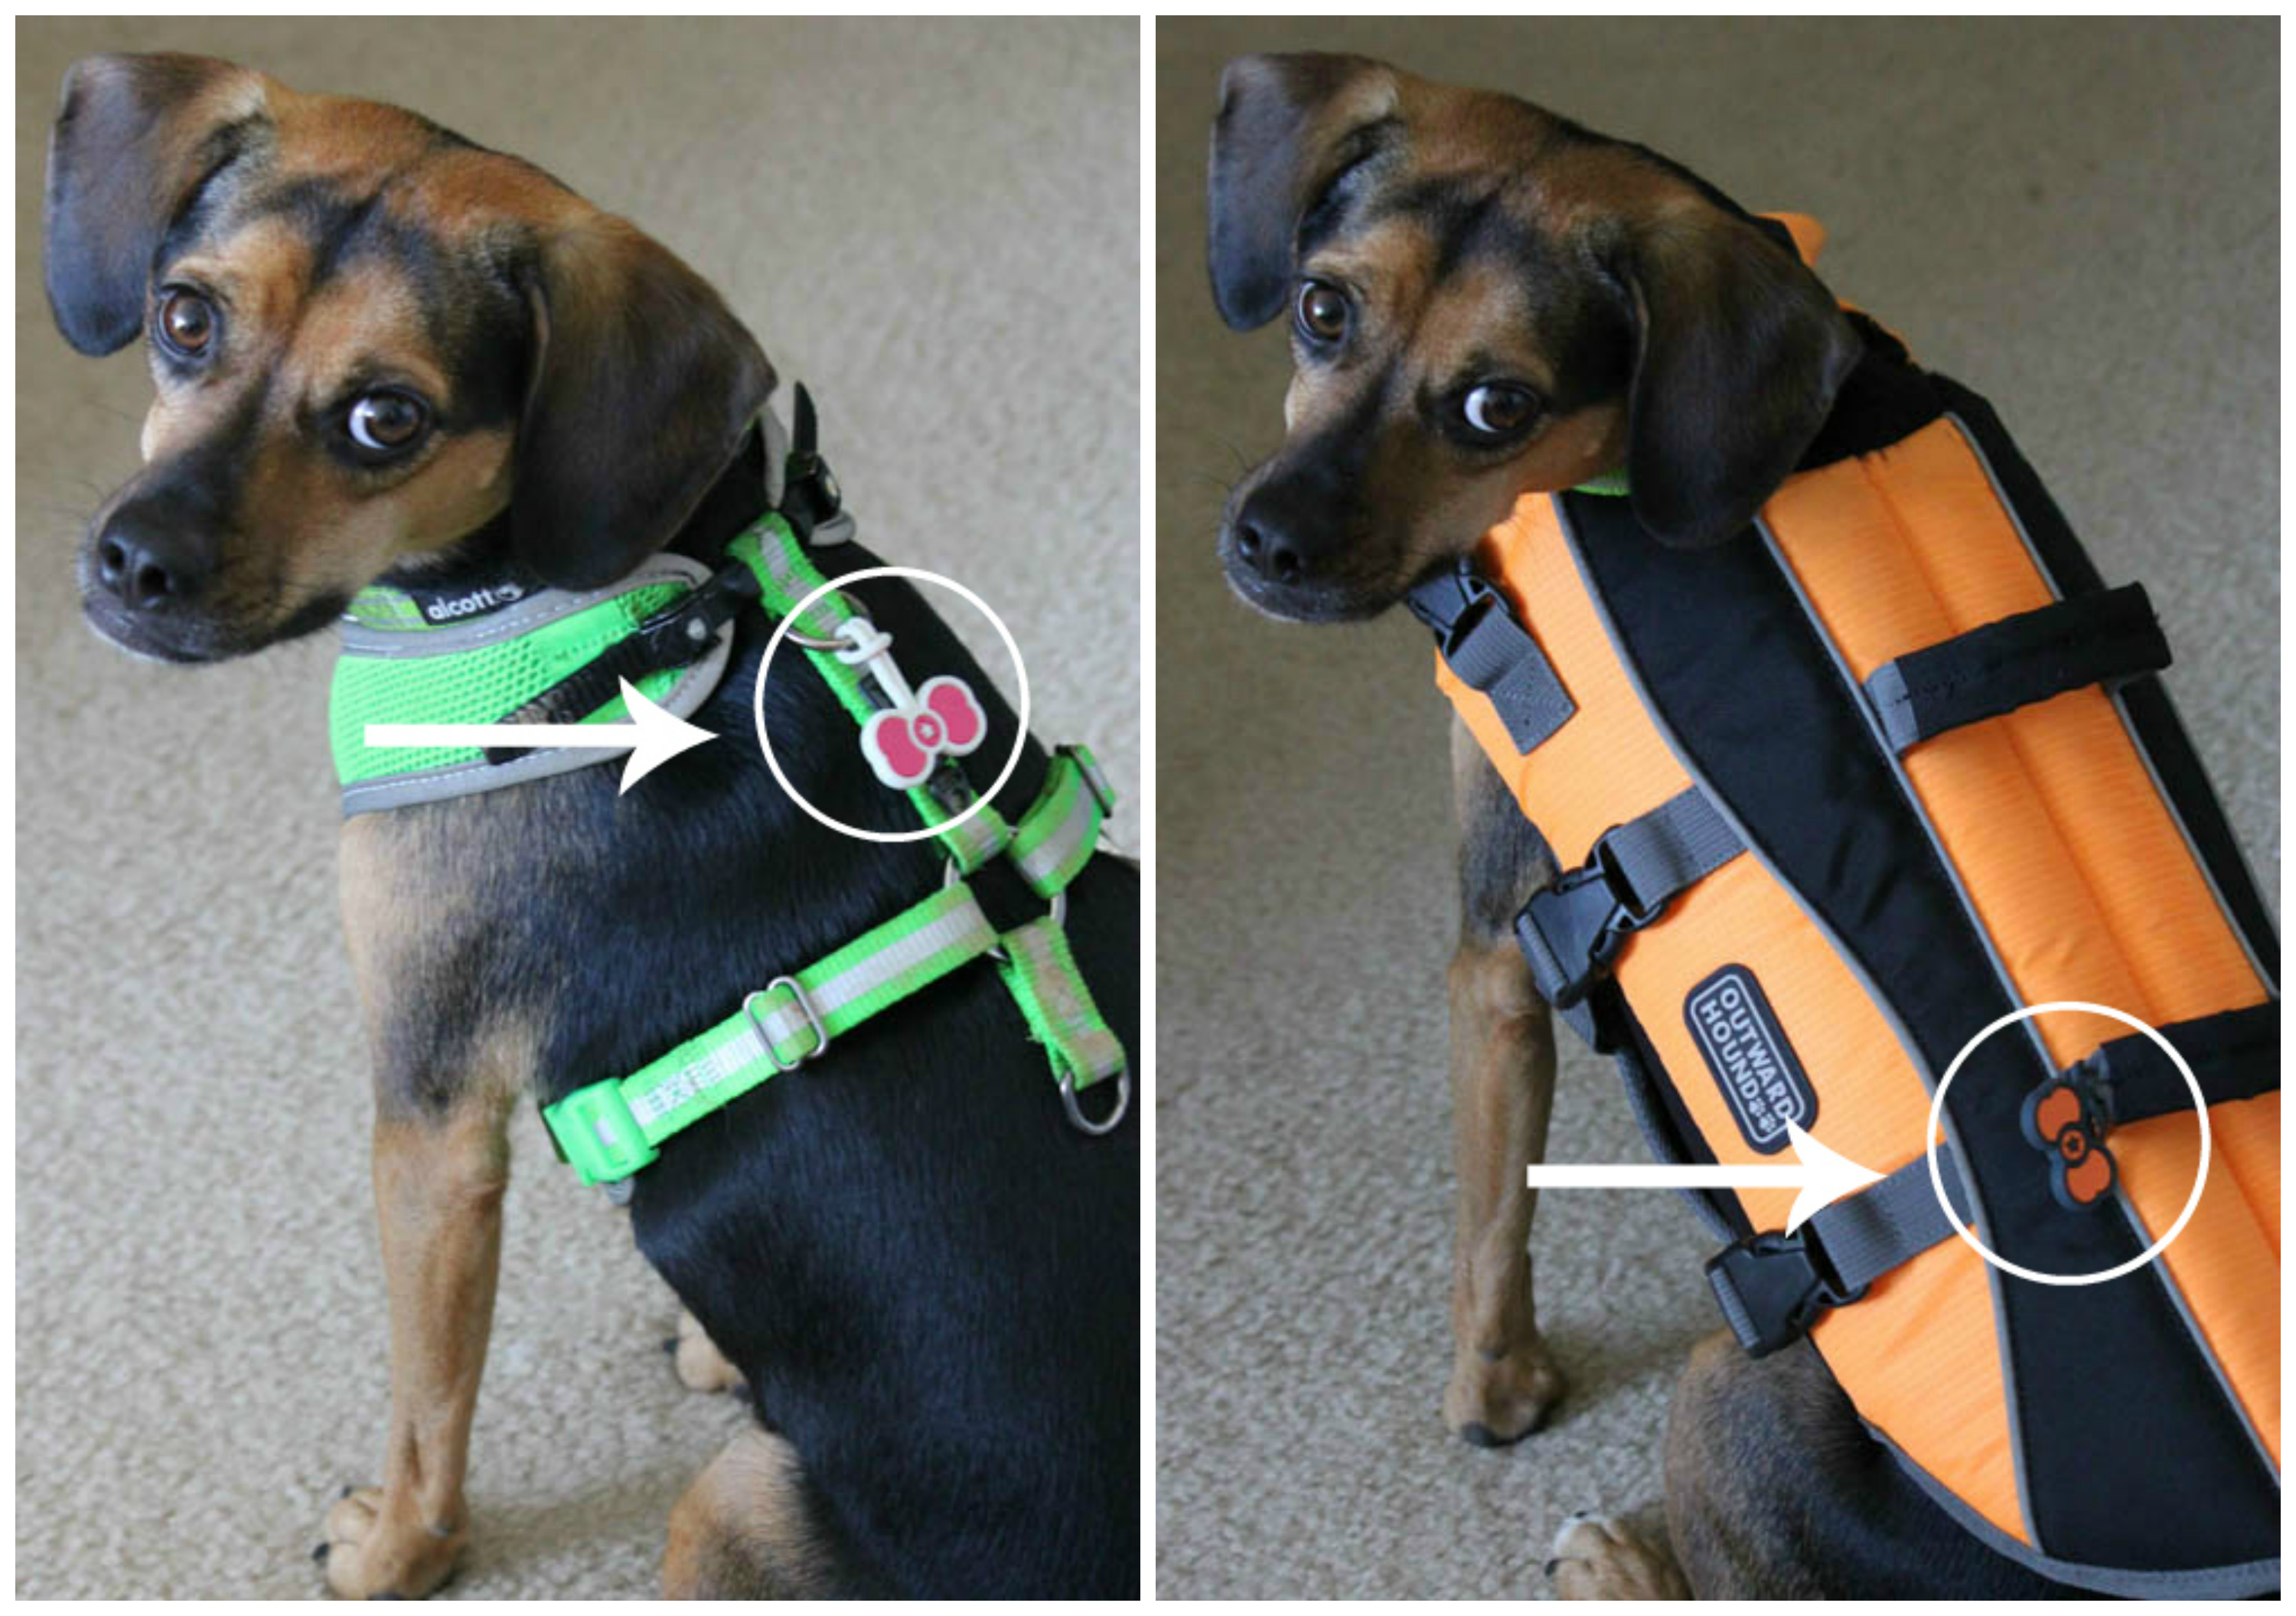 Luna wears her Twigo Tags on her harness and life jacket.